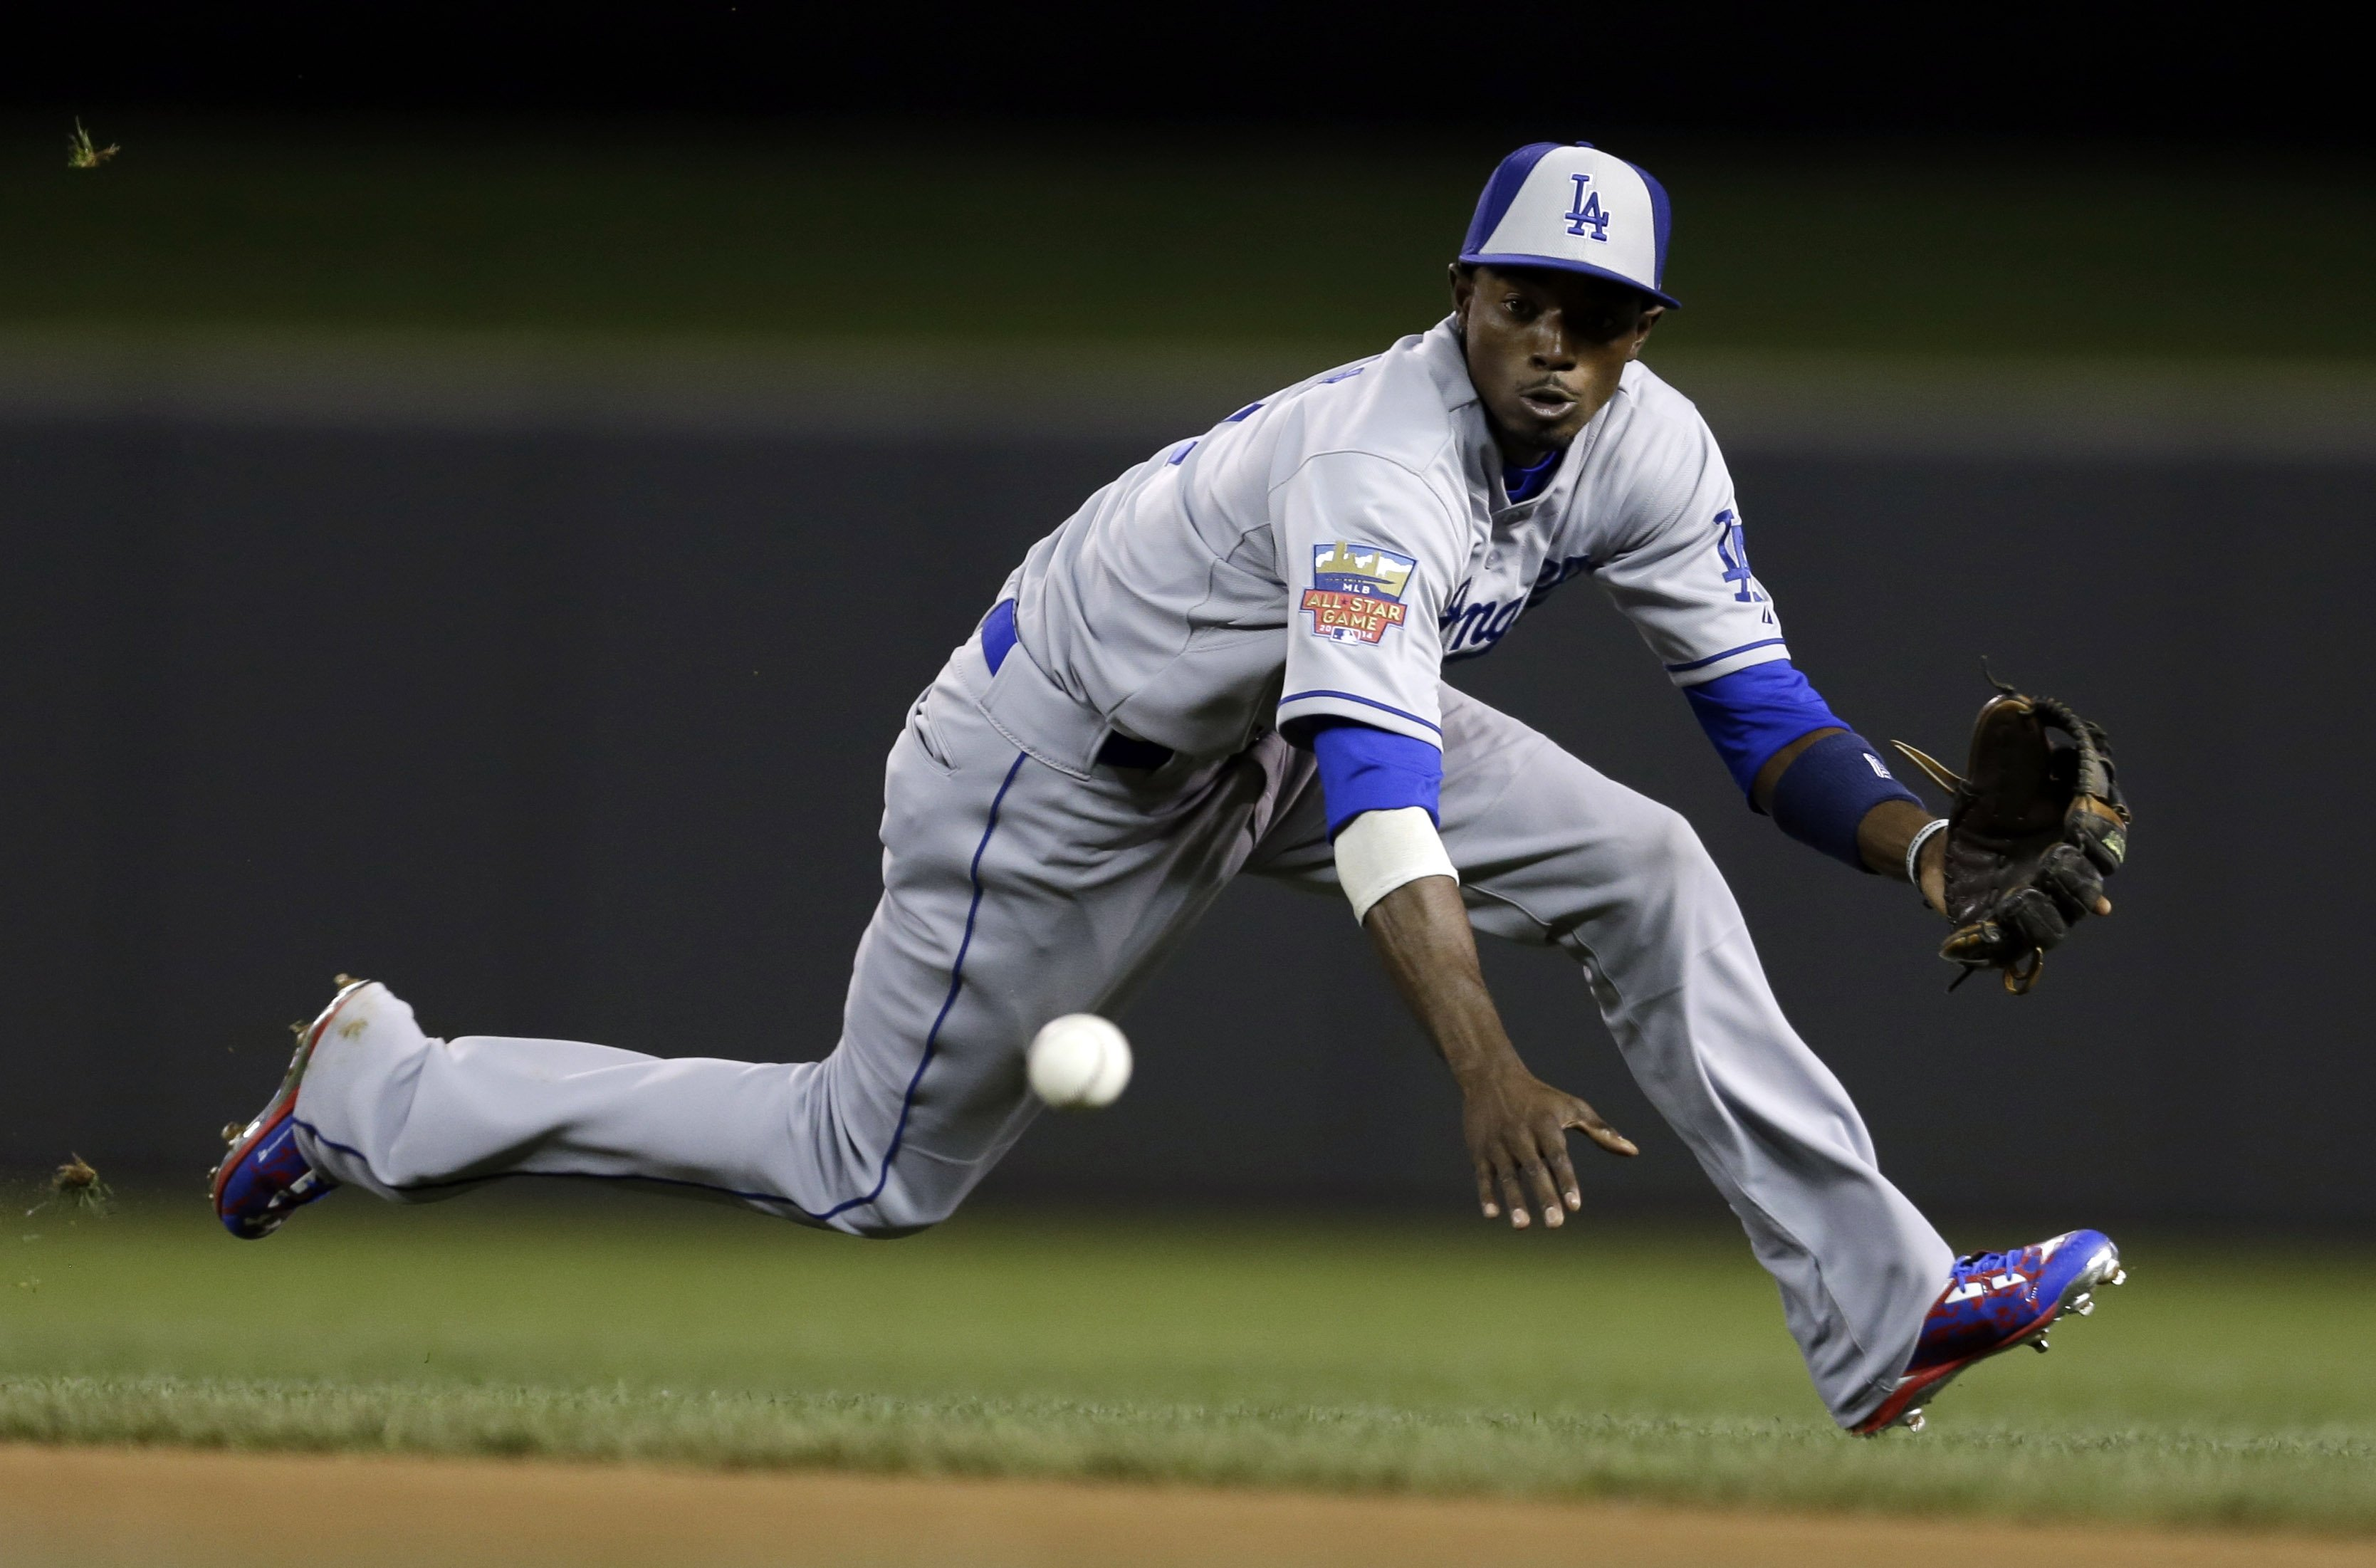 National League second baseman Dee Gordon, of the Los Angeles Dodgers, fields a ground ball hit by American League's Michael Brantley, of the Cleveland Indians, during the MLB All-Star baseball game on July 15, 2014, in Minneapolis.